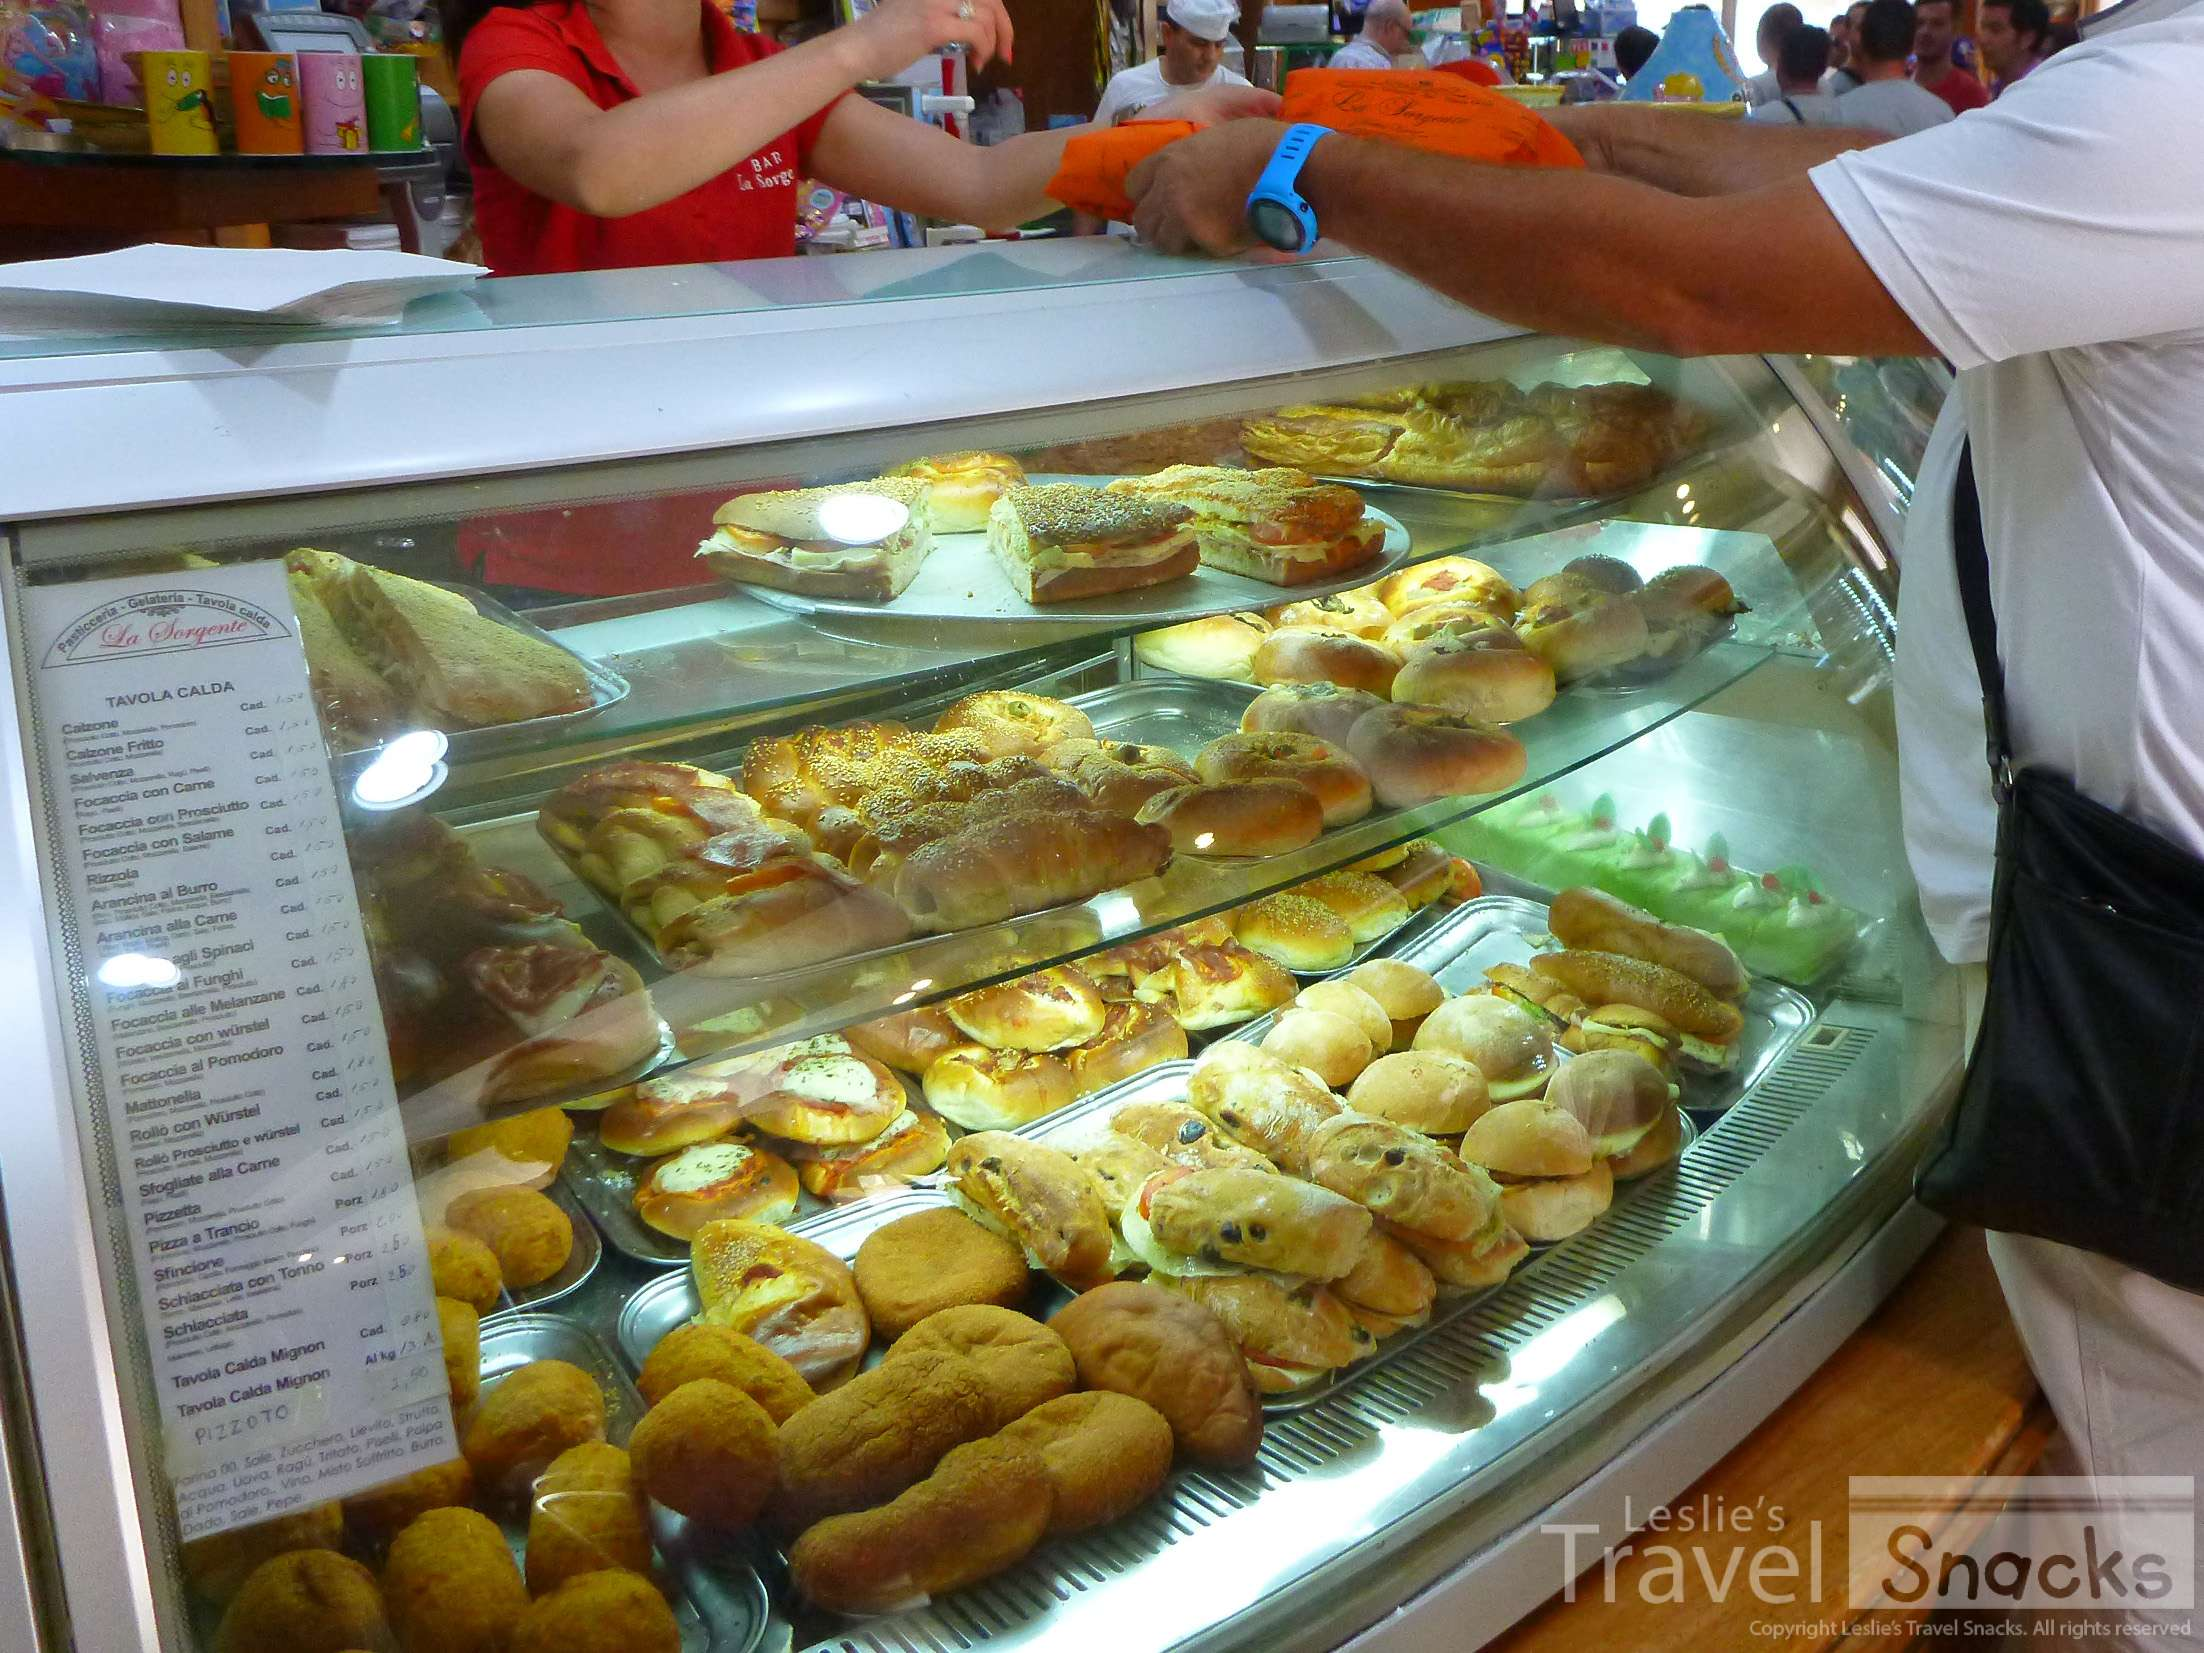 Bakeries can be a great place to find inexpensive pastries filled with cheese or vegetables. Okay, and maybe a few sweets, too. ;)